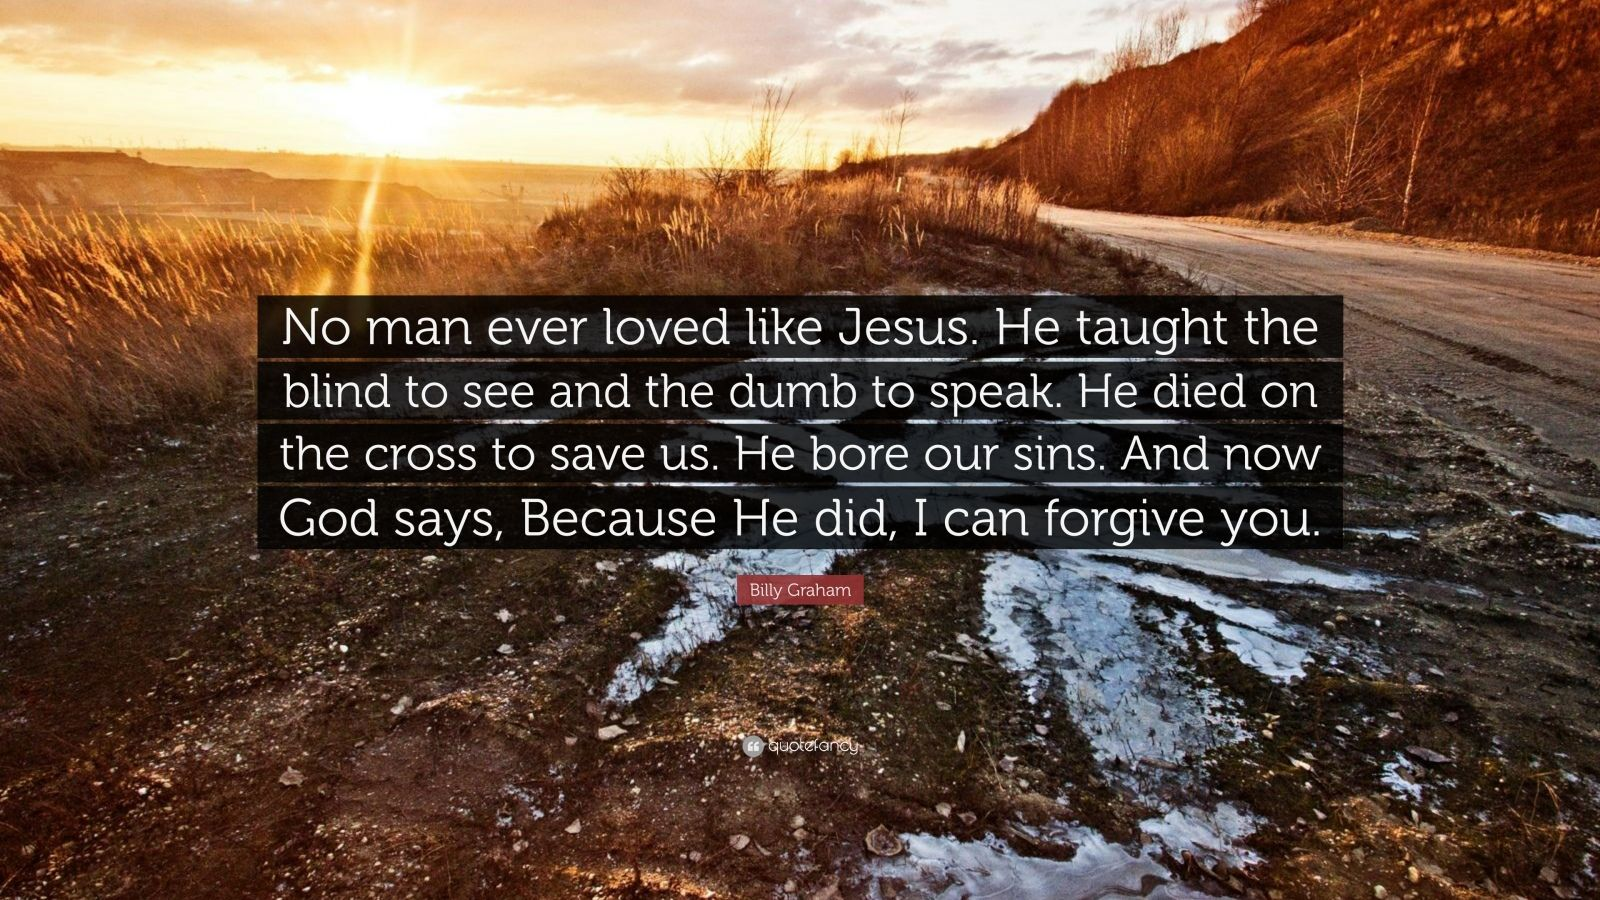 """Billy Graham Quote: """"No man ever loved like Jesus. He taught the blind to see and the dumb to speak. He died on the cross to save us. He bore our sins. And now God says, Because He did, I can forgive you."""""""